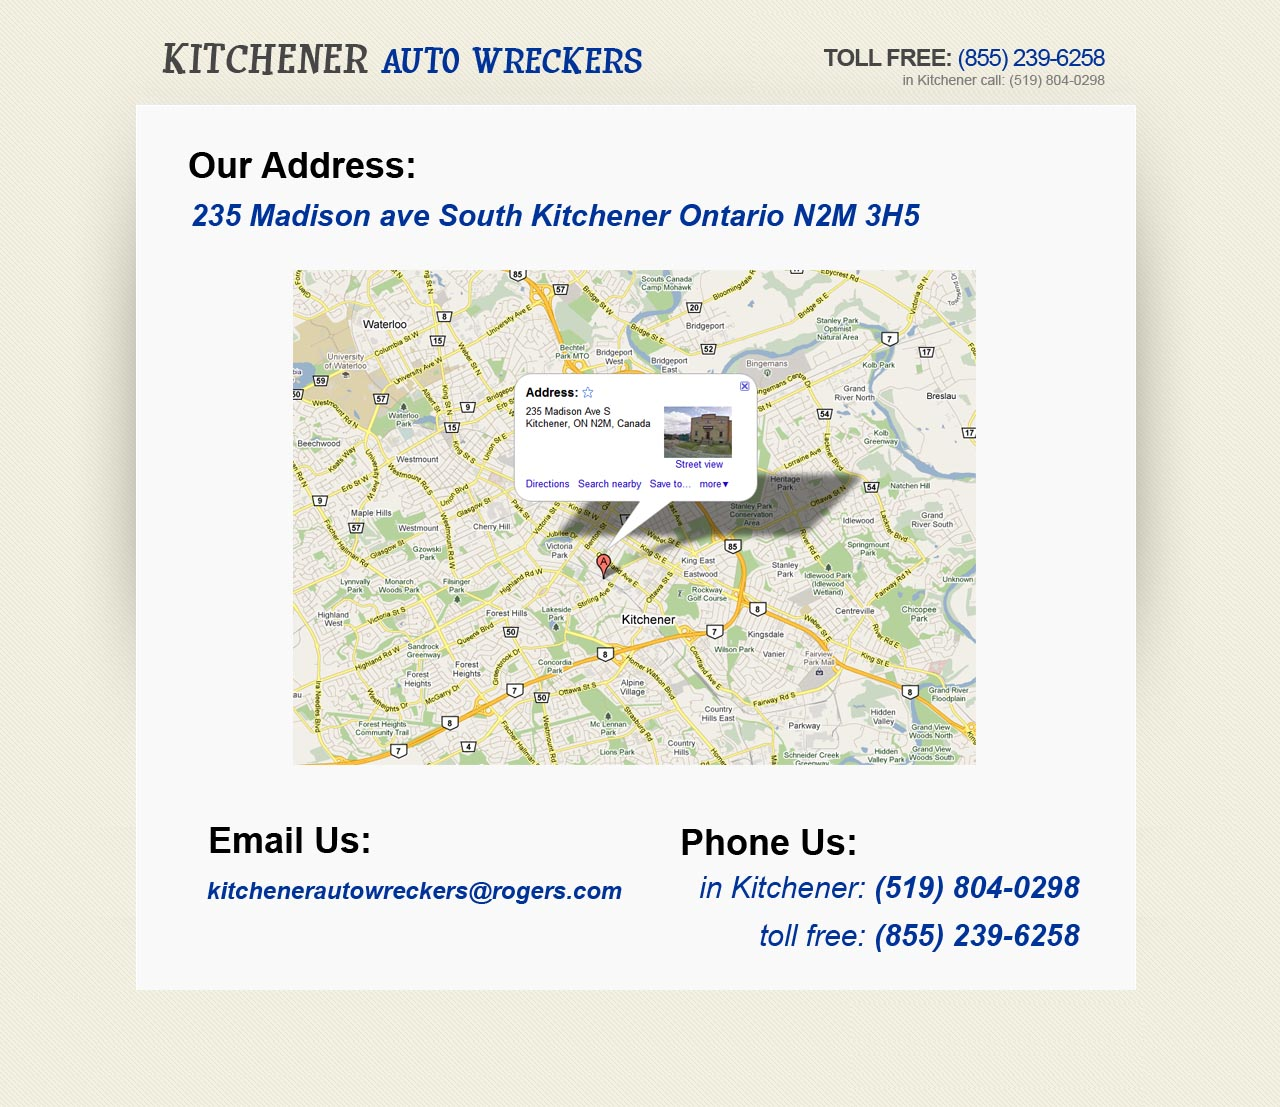 Kitchener Auto Wreckers - (855) 239-6258